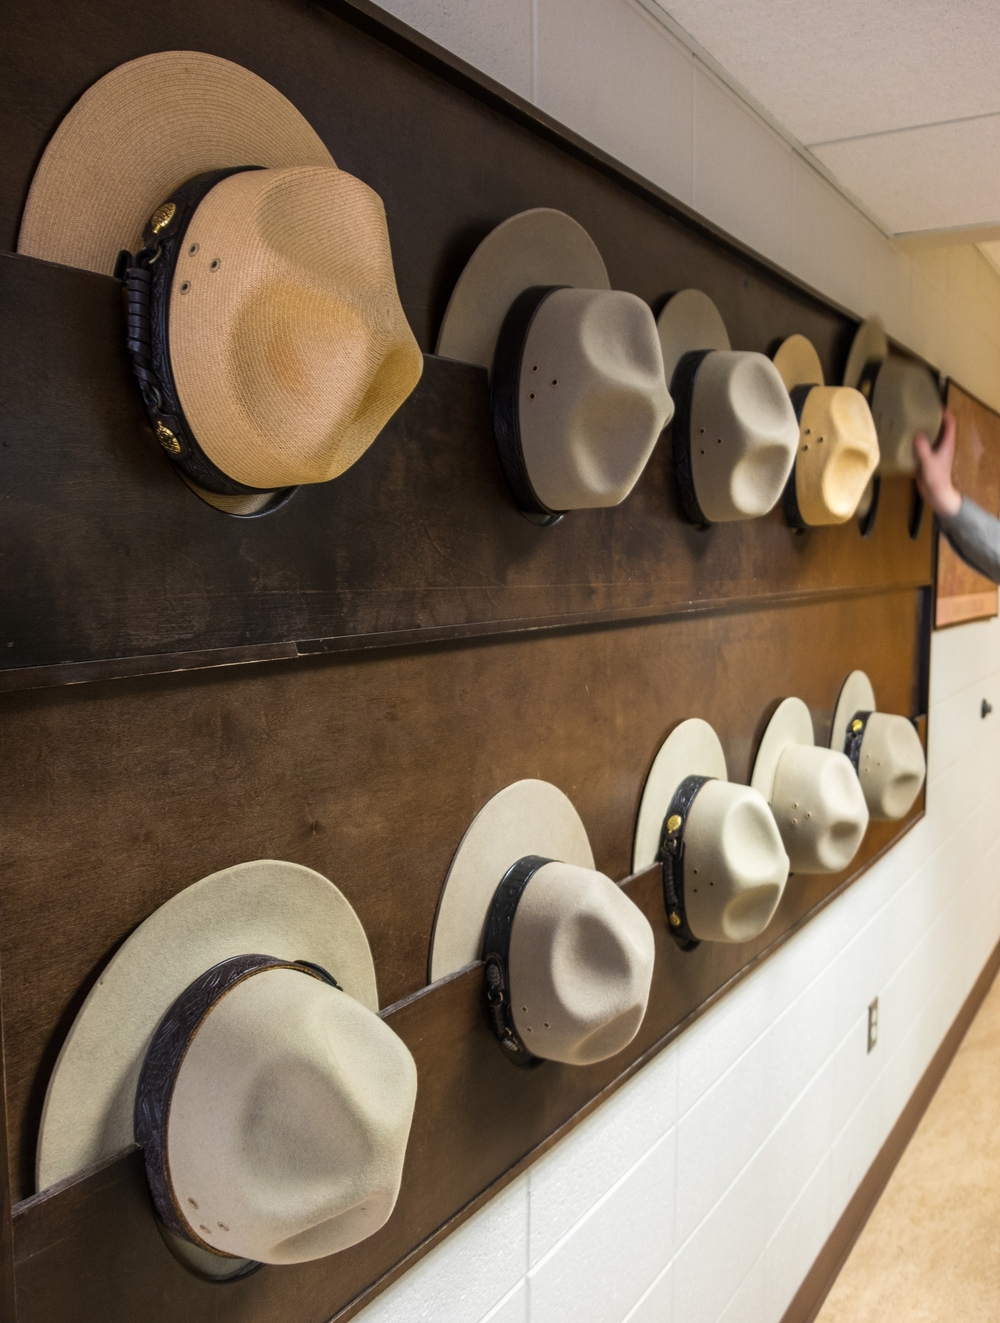 National Park Service ranger hats at Mammoth Cave National Park. | Photo credit: Jonathan Irish #59in52